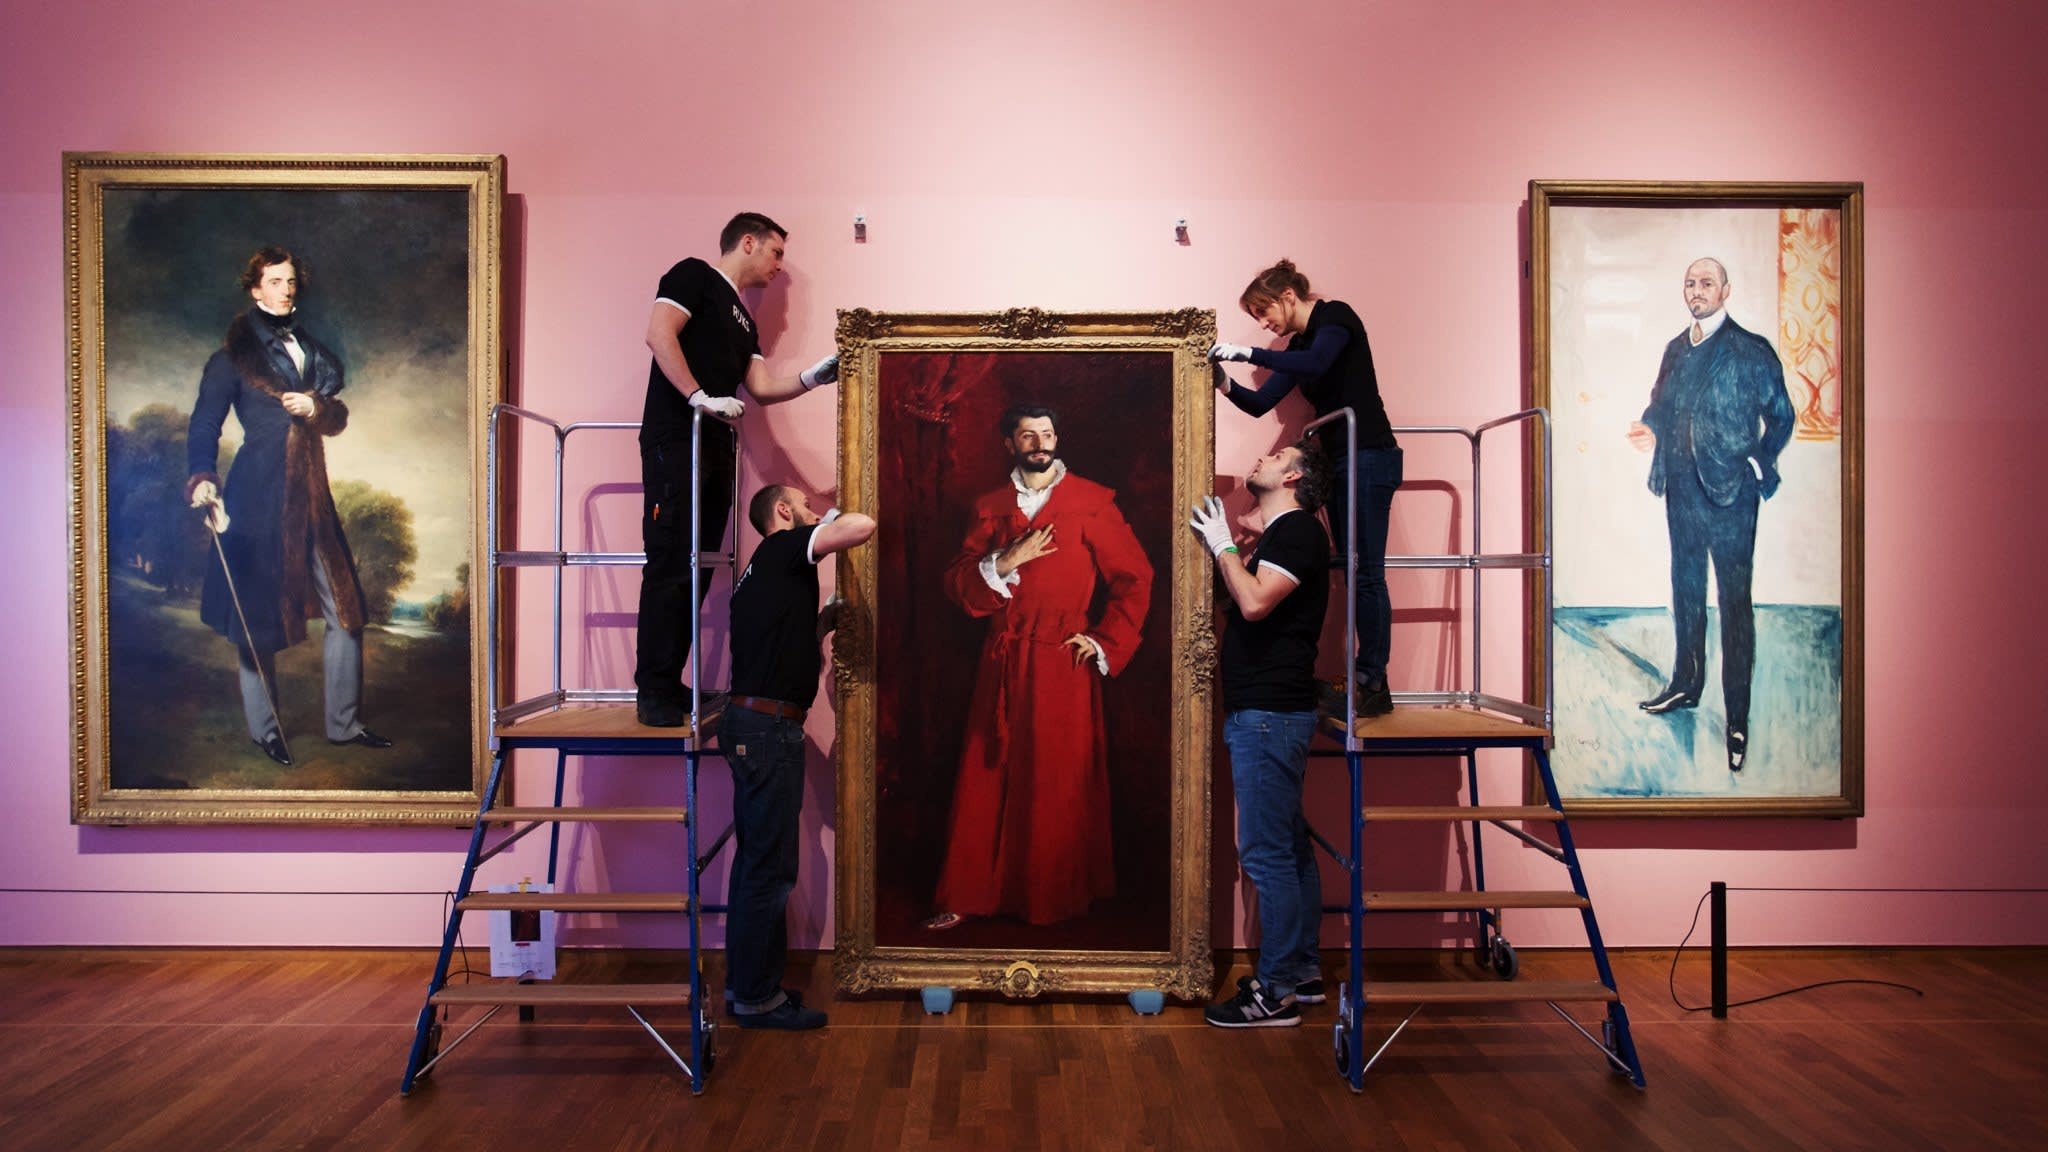 High and mighty: an extravaganza of portraiture at the Rijksmuseum